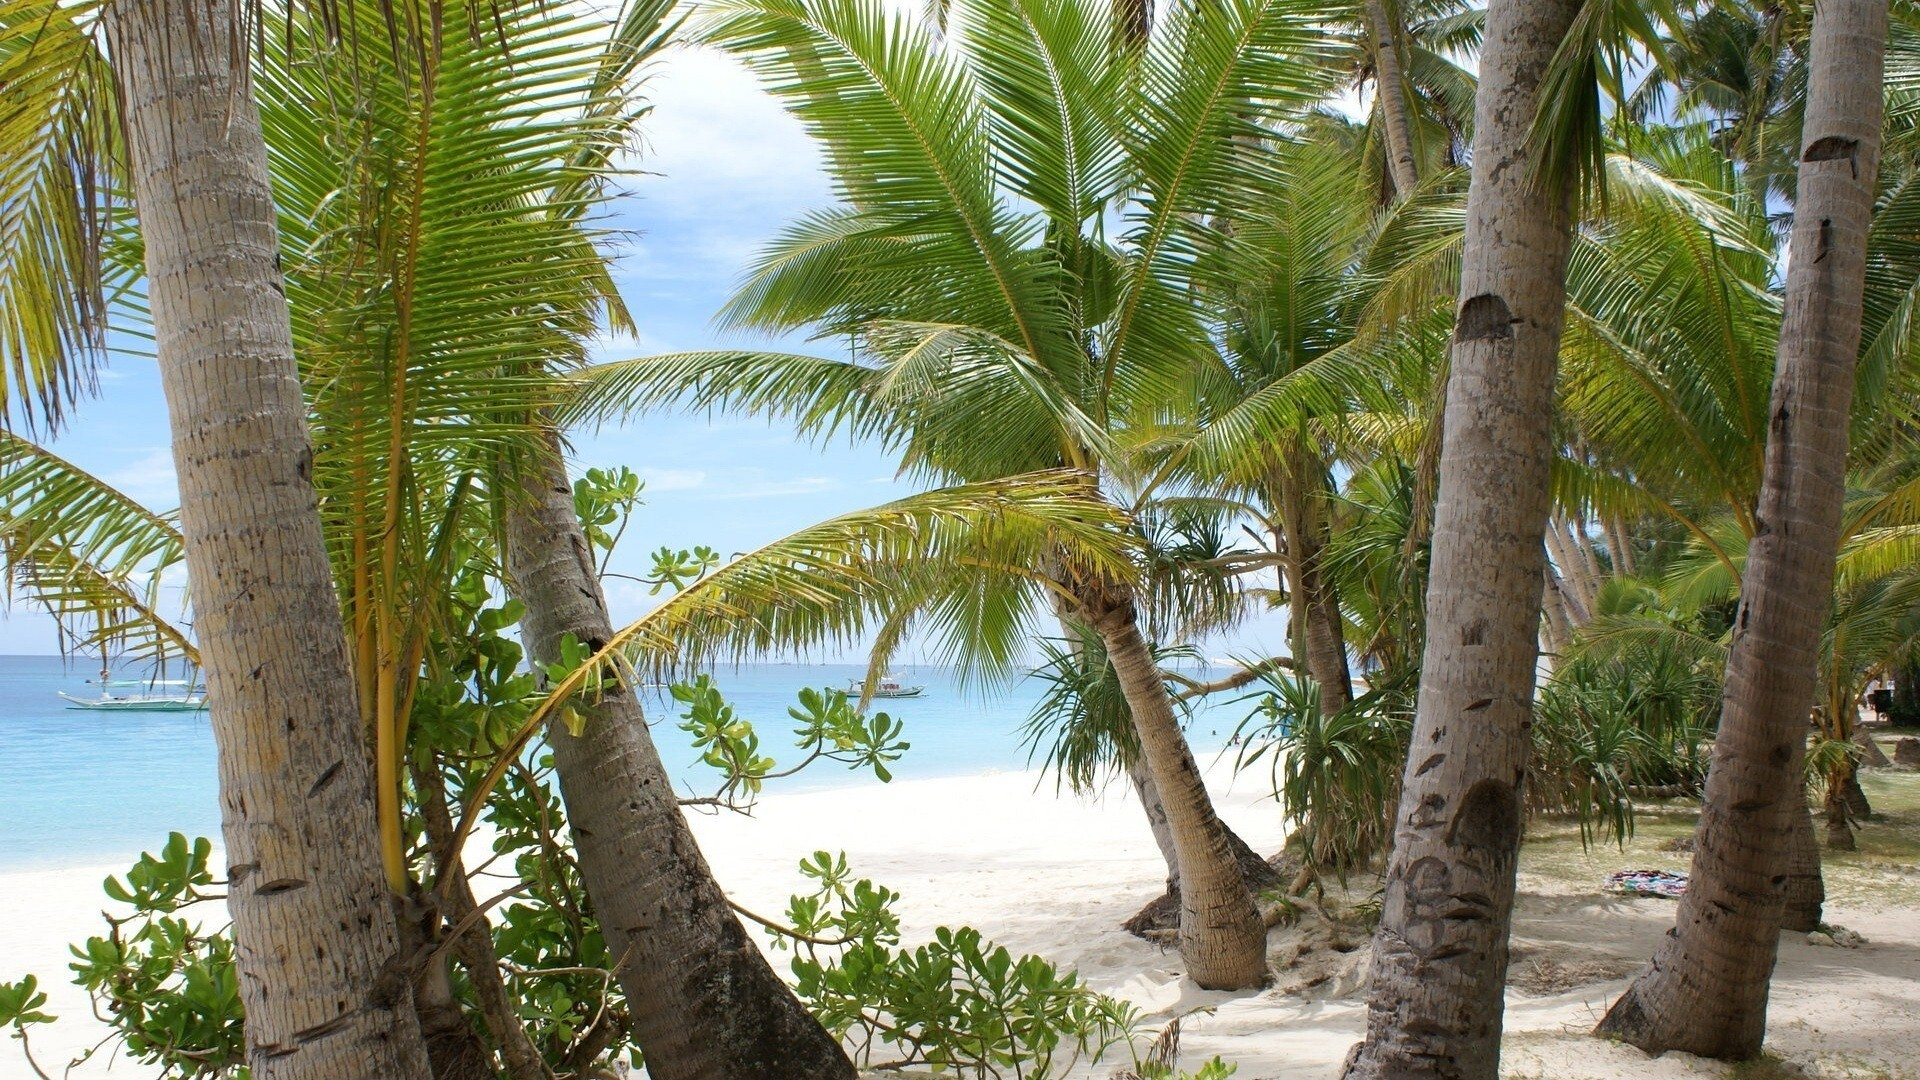 10 Most Popular Beautiful Beach Backgrounds Palm Trees: Beautiful Beach And Coconut Tree Photo